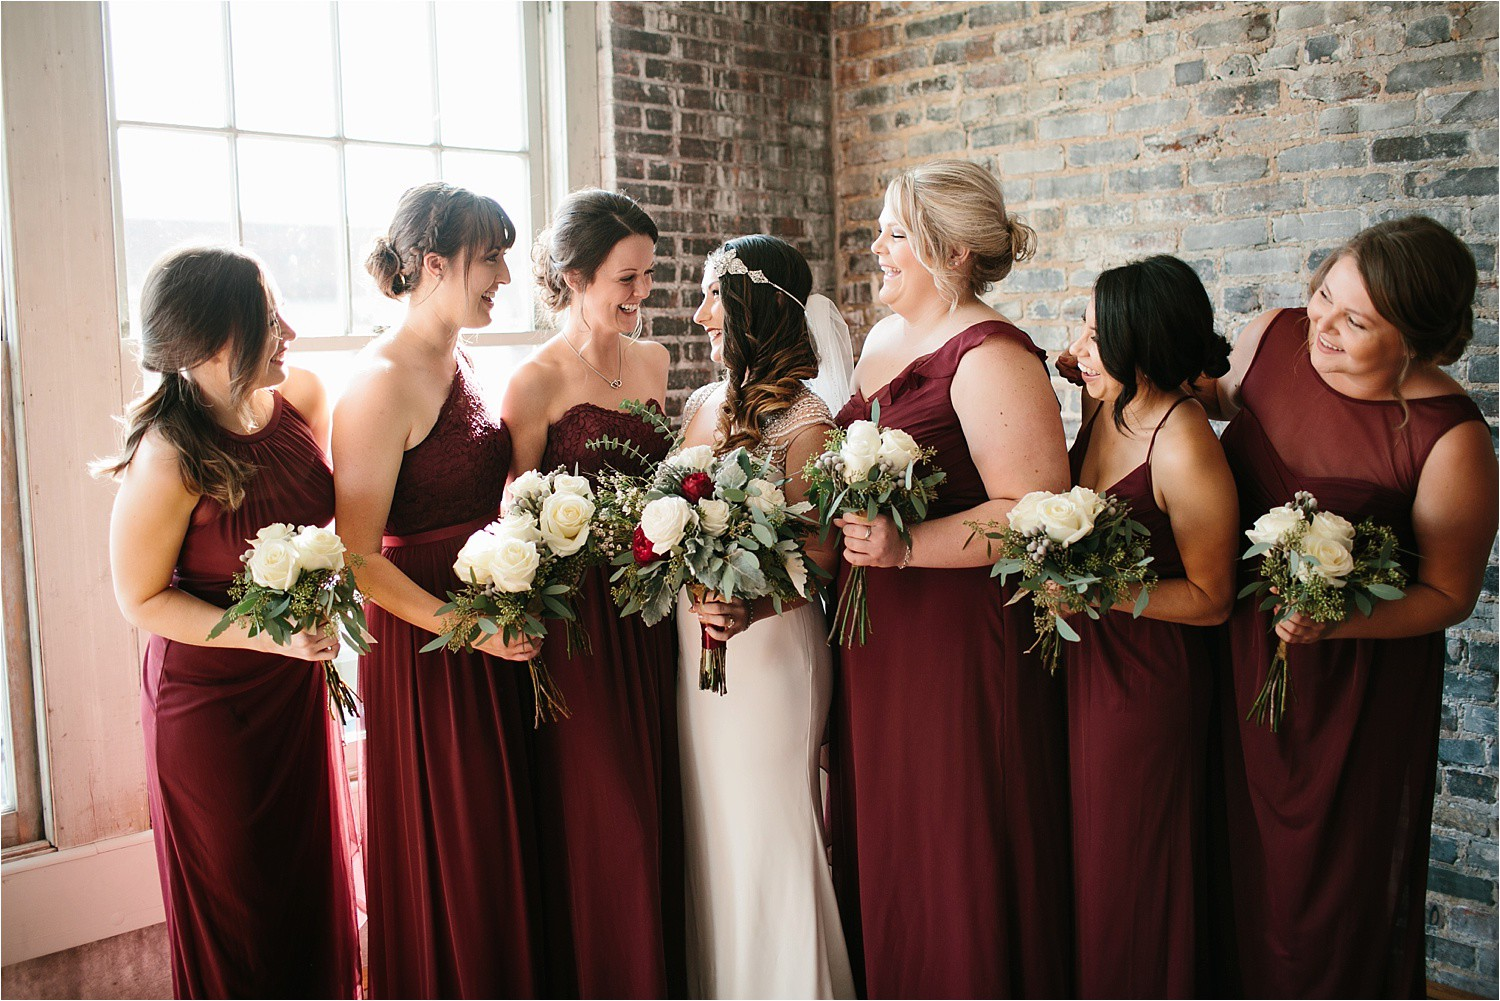 whittney-drew-__-an-intimate-wine-and-navy-wedding-in-an-industrial-venue-at-loft-123-in-paris-tx-by-north-texas-wedding-photographer-rachel-meagan-photography-_-033